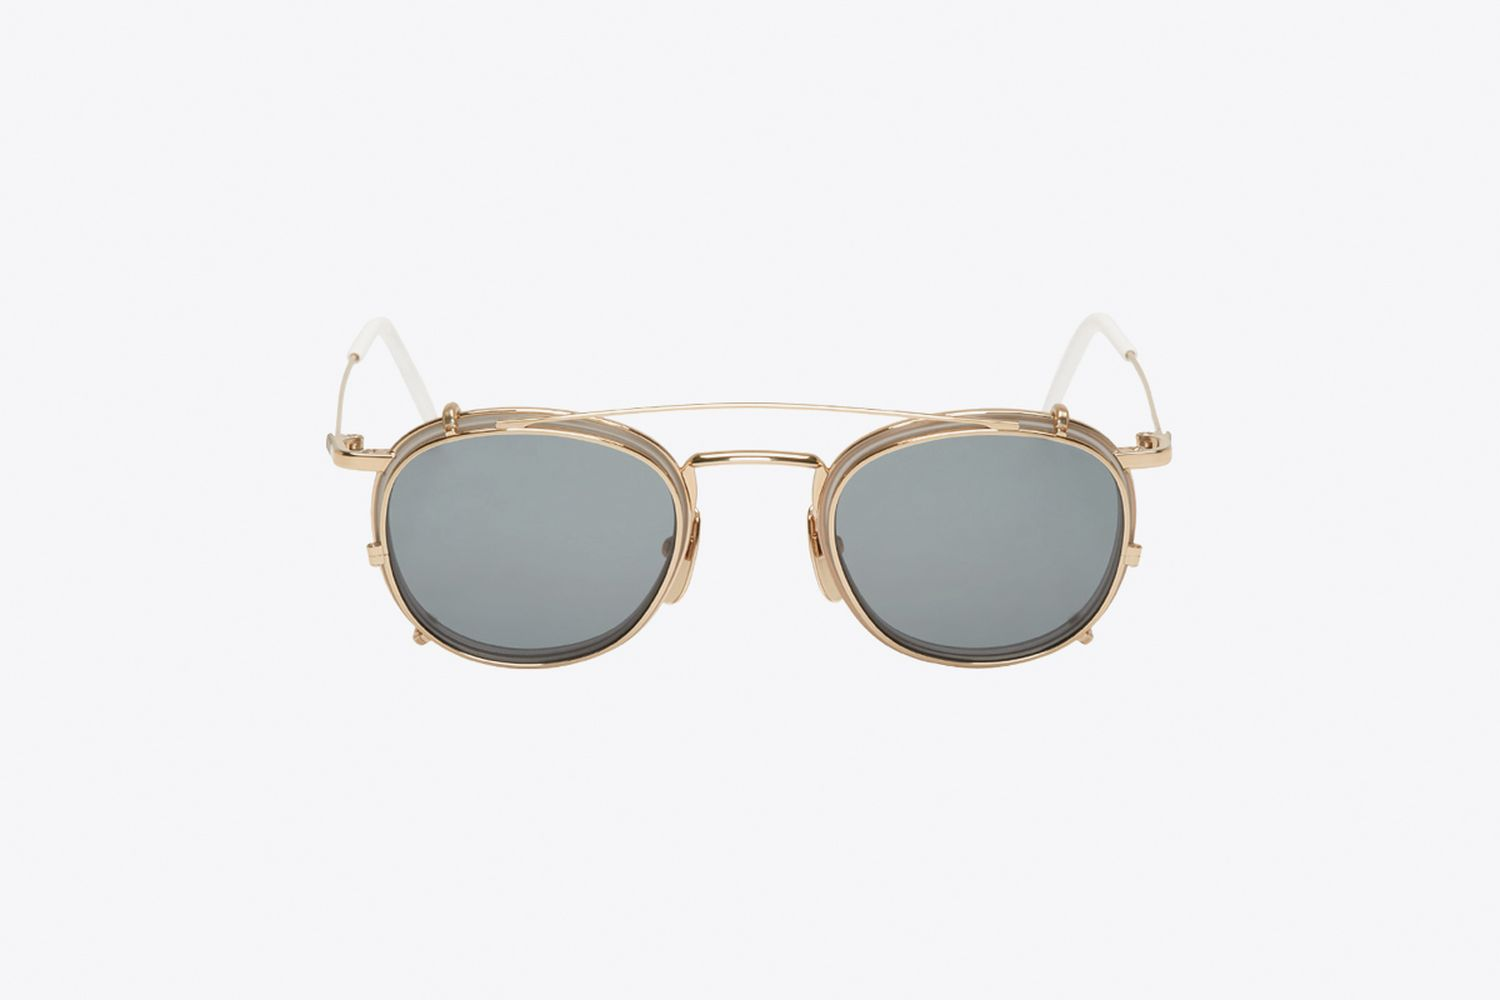 12k Gold Sunglasses